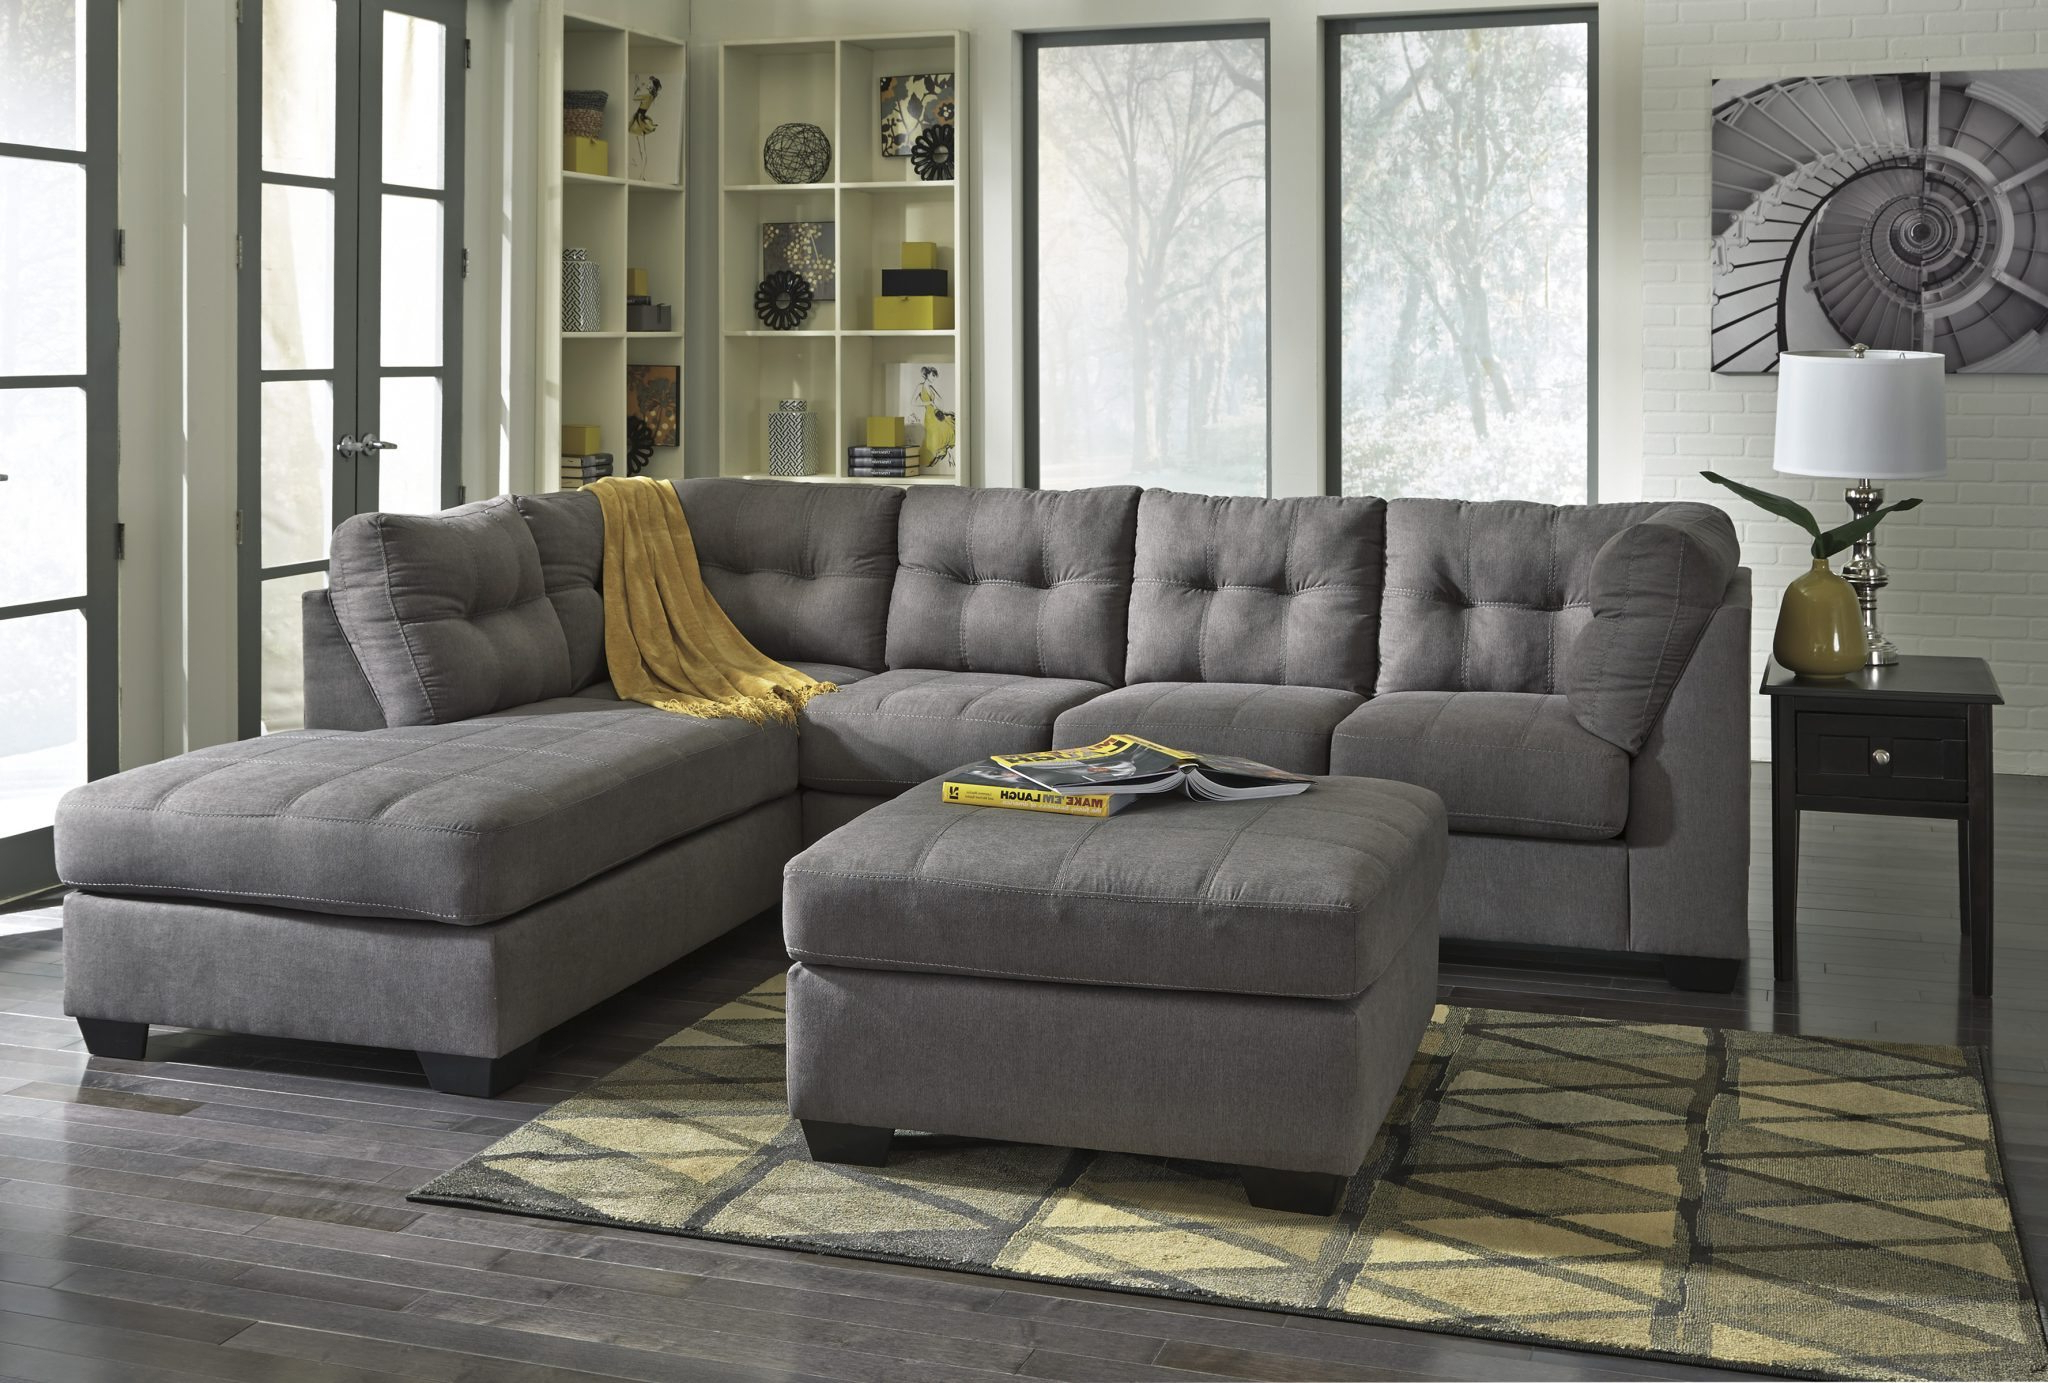 Widely Used Meyer 3 Piece Sectionals With Laf Chaise With Regard To Ashley 452 Maier Sectional – $ (View 10 of 20)